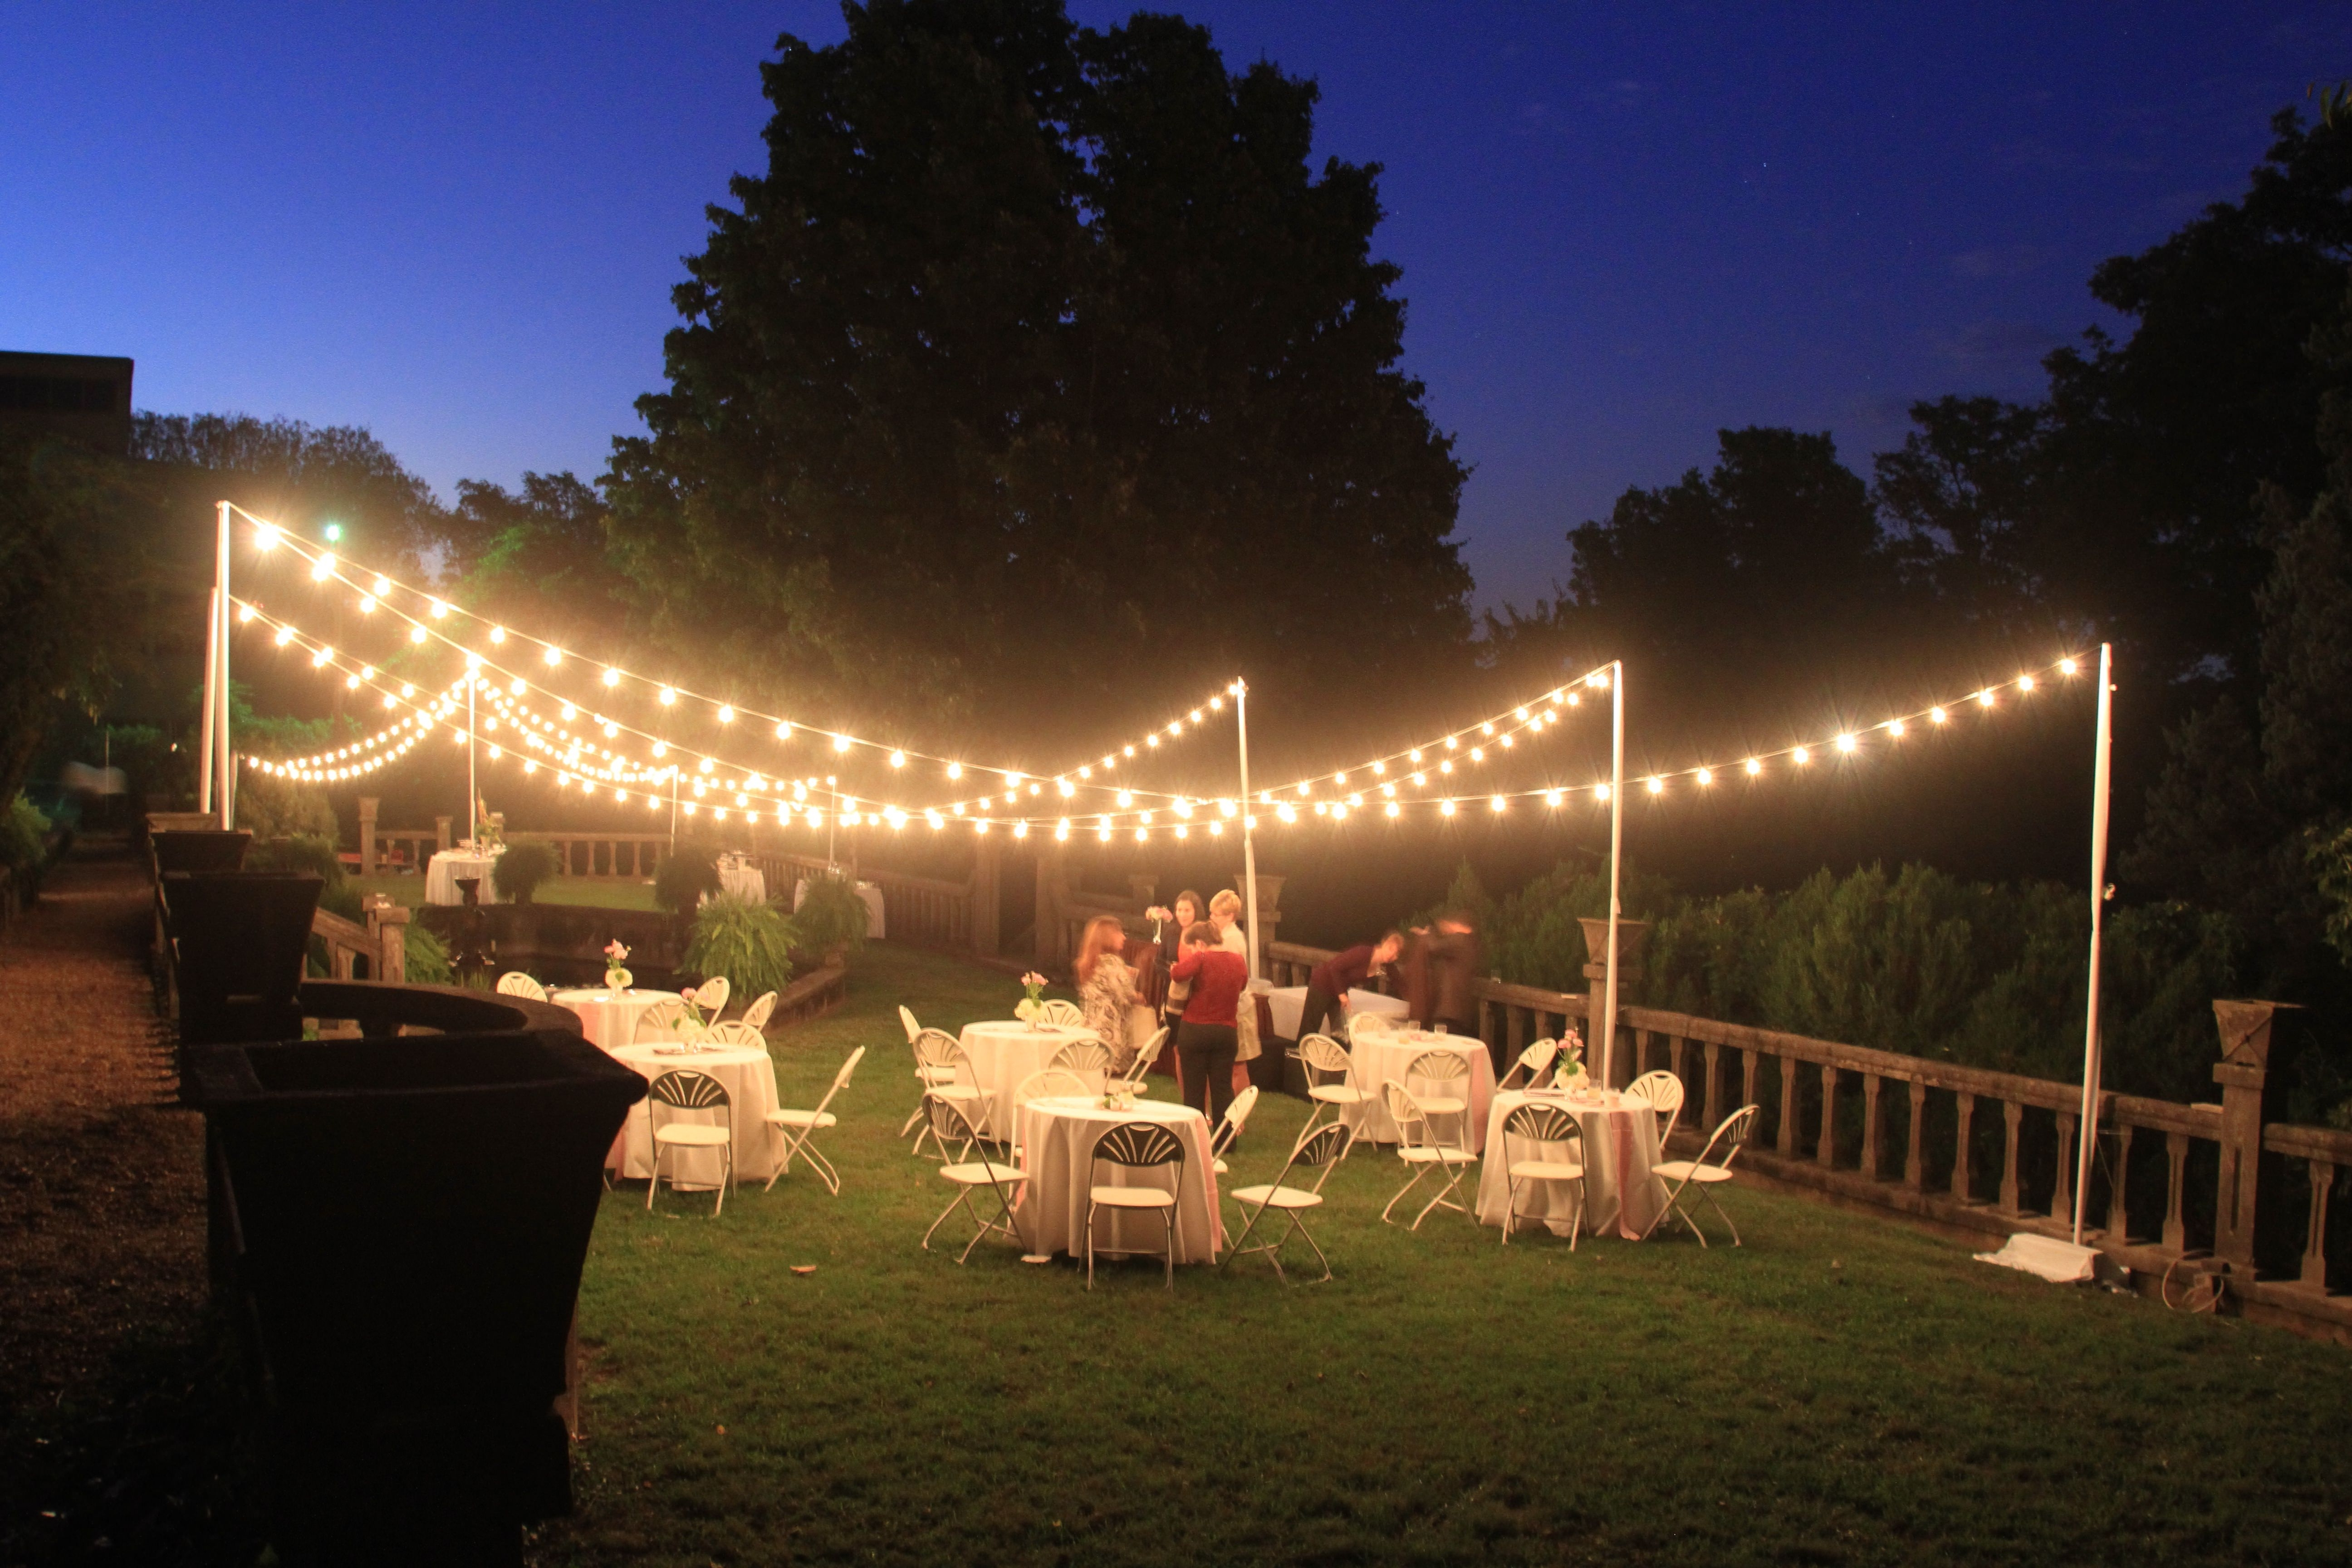 Current Outdoor Lanterns For Wedding Throughout Outdoor Lights For Wedding – Outdoor Lighting Ideas (View 4 of 20)